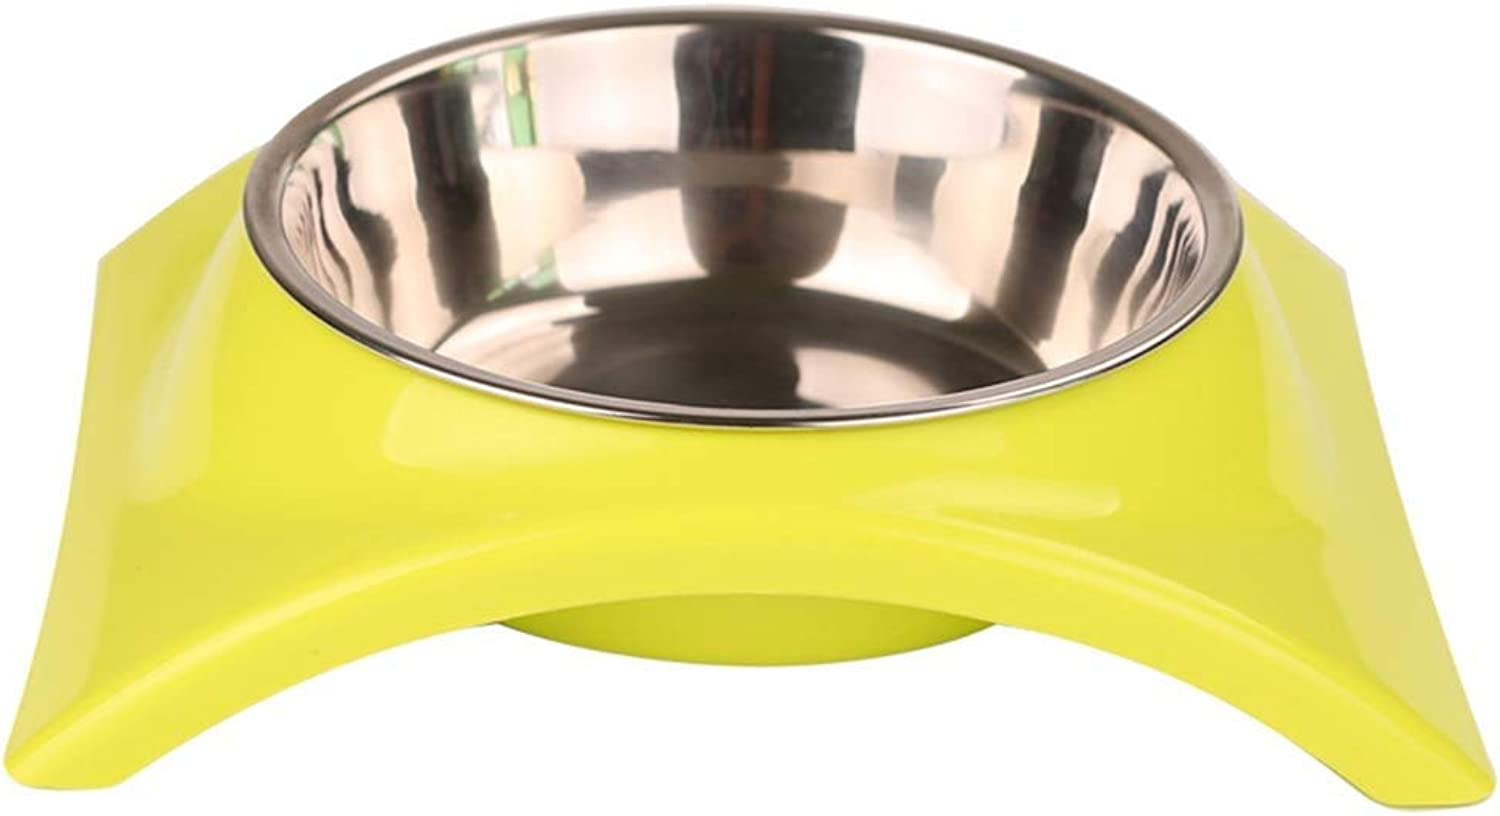 WSJTT Round Pet Dog Cat Plastic Bowl Durable Food Drink Feeder Bowl Candy colors Feeding Dish Bowl,Stainless Steel Pets Dog Bowl Travel Food Bowls for Cats Dogs Outdoor Drinking Water Pet Dog Dish Fee